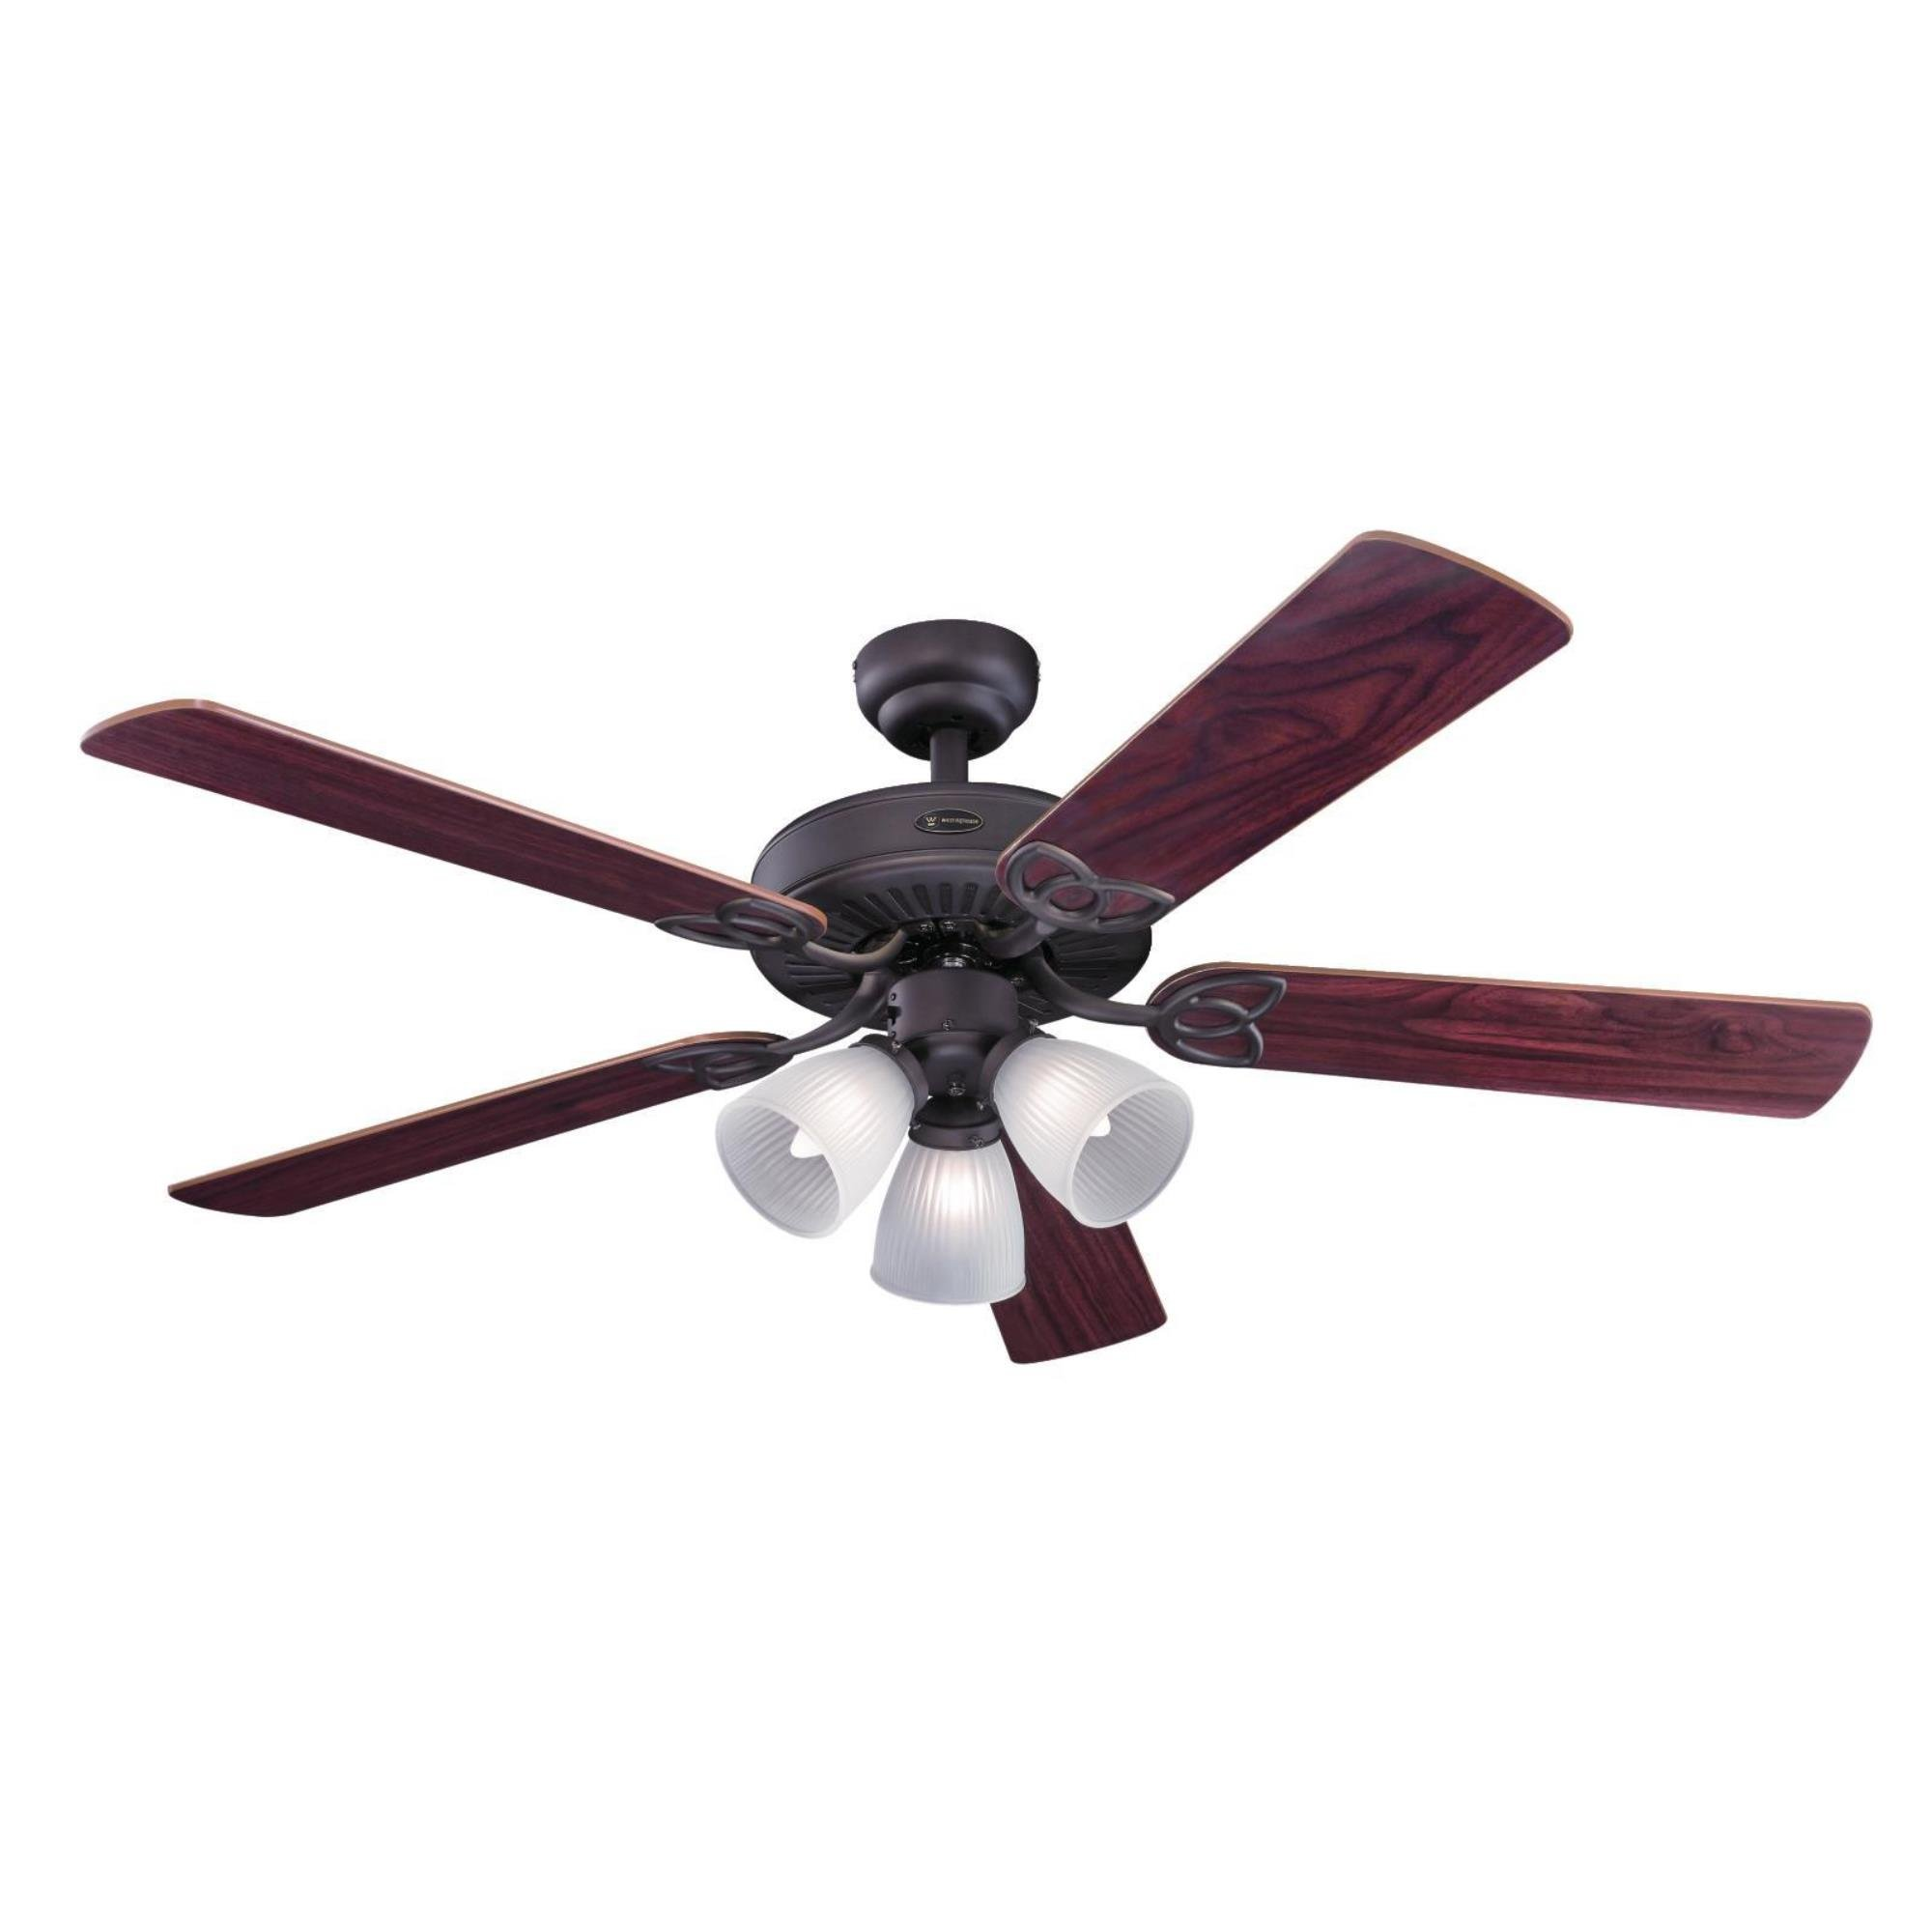 Westinghouse 7207900 Traditional Vintage 52 inch Oil Rubbed Bronze Indoor Ceiling Fan, Light Kit with Frosted Ribbed Glass